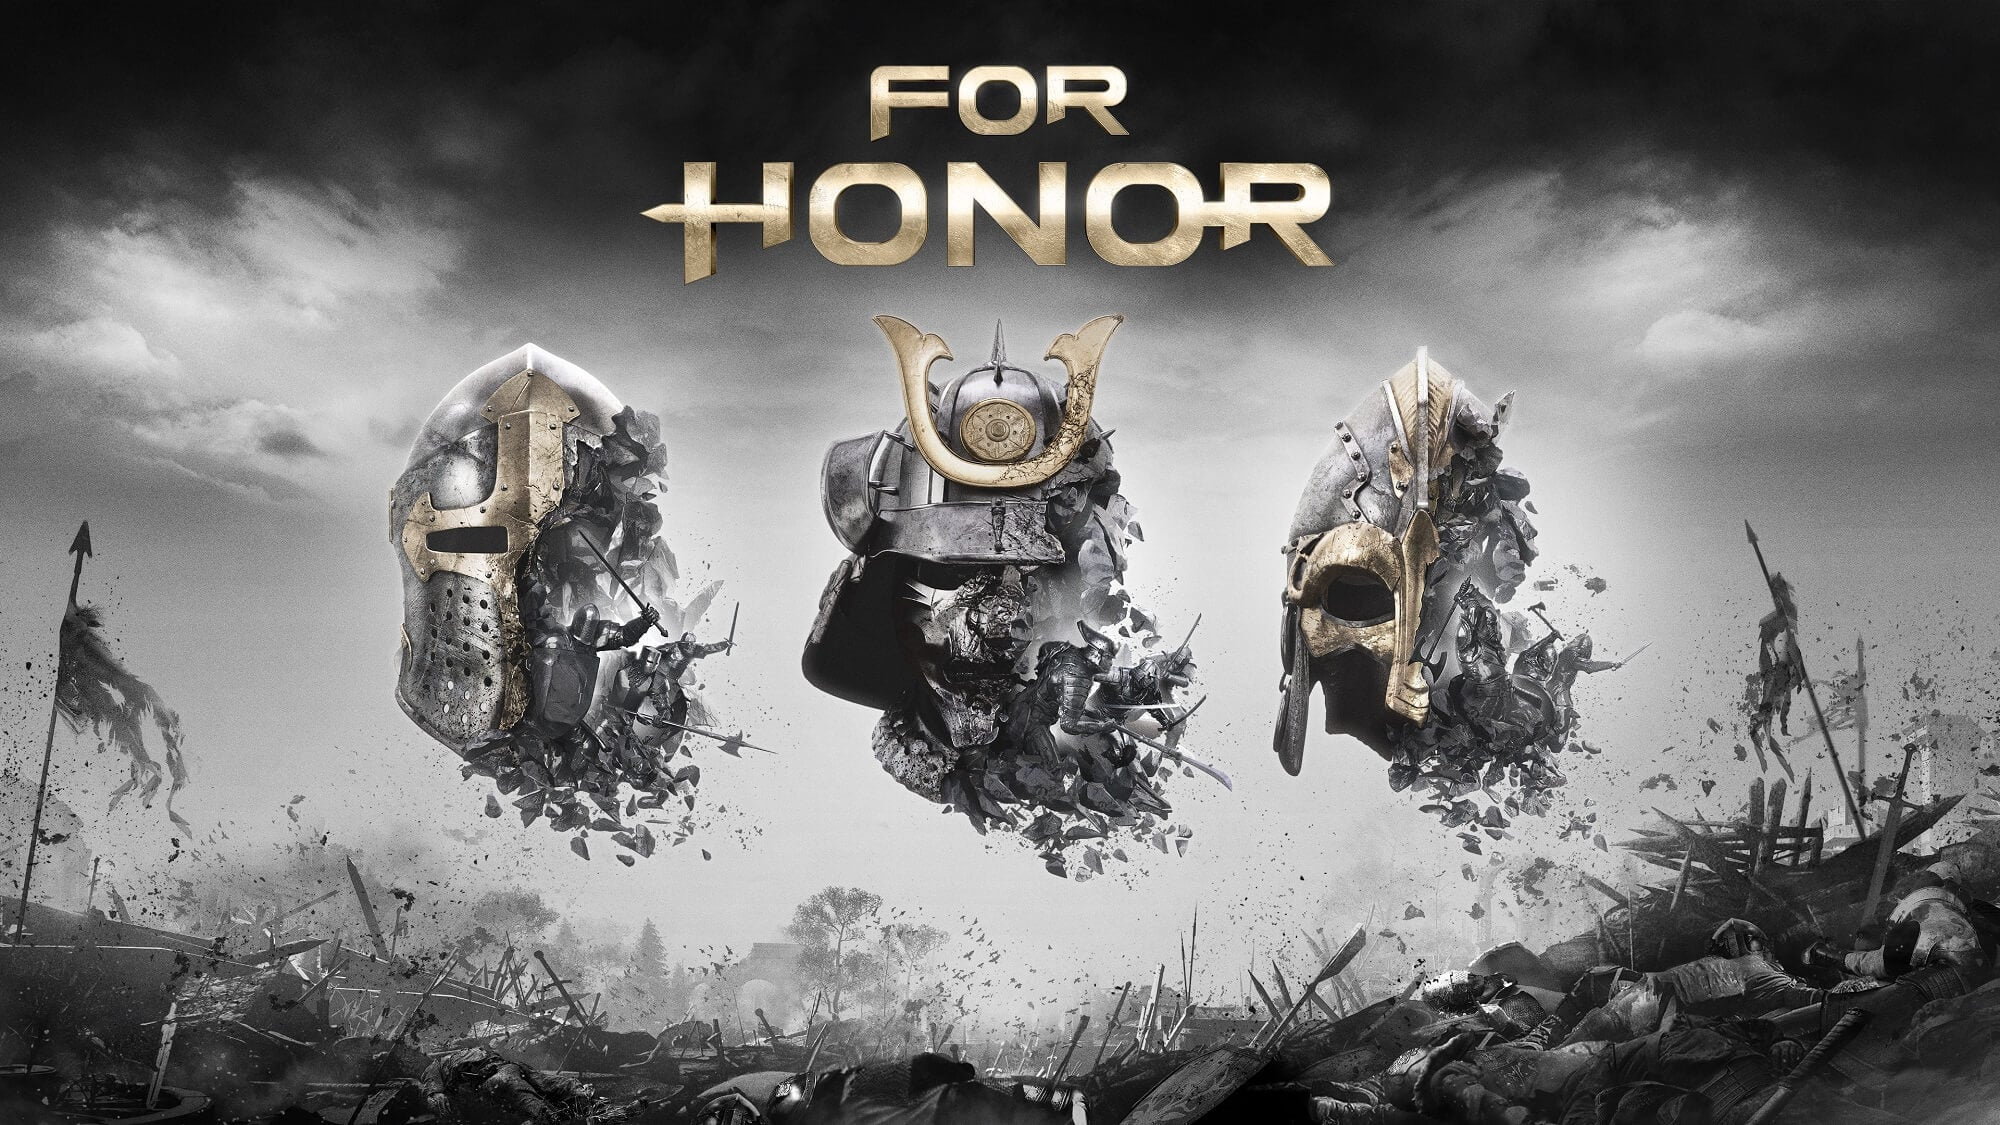 For honor how to change matchmaking settings